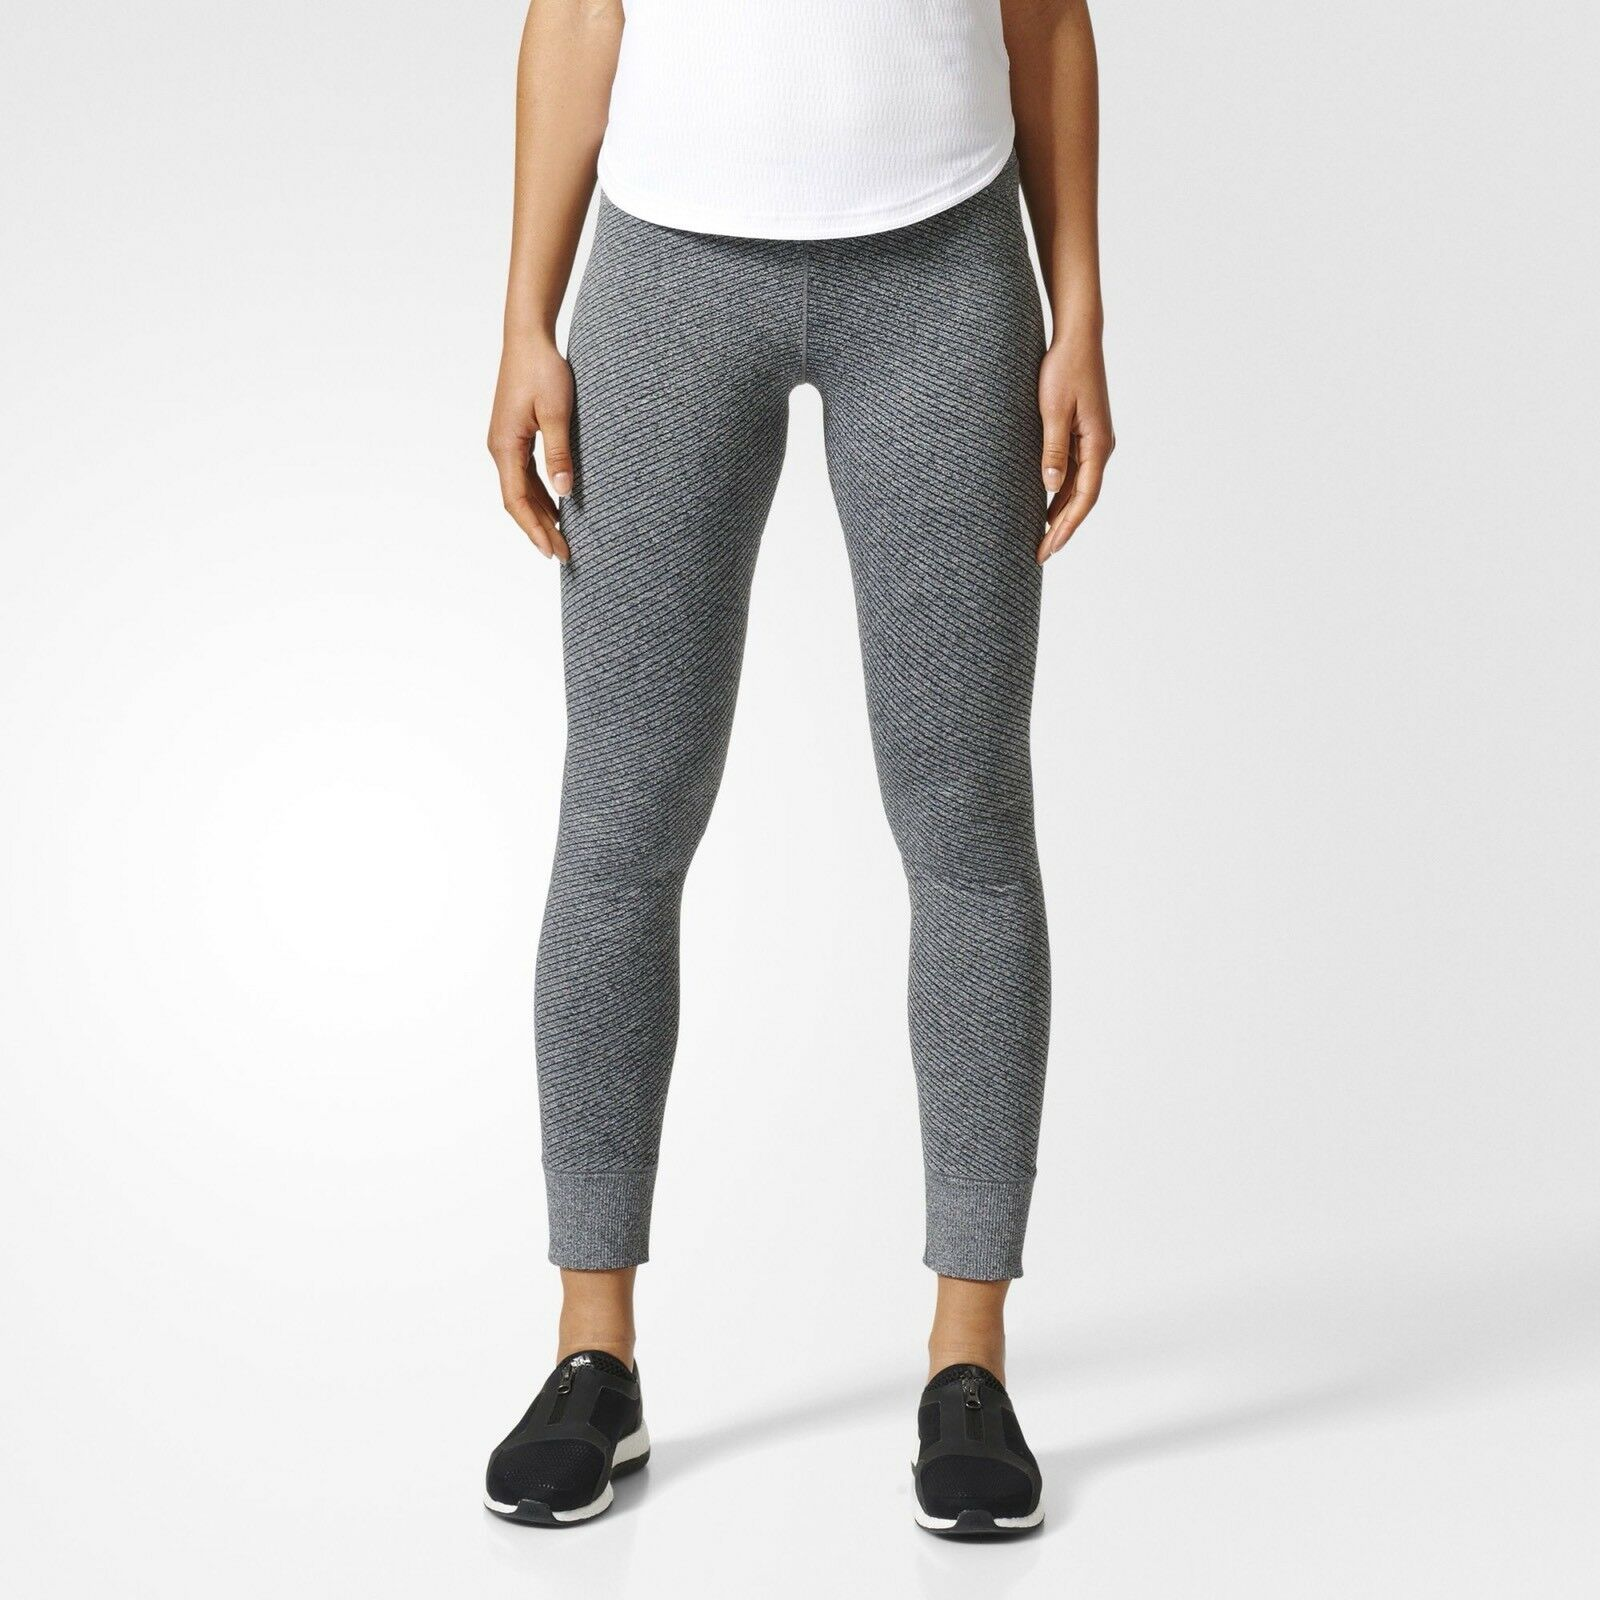 ADIDAS X REIGNING CHAMP Donna PRIMEKNIT PK Grey Knitted Leggings BR5542 Small